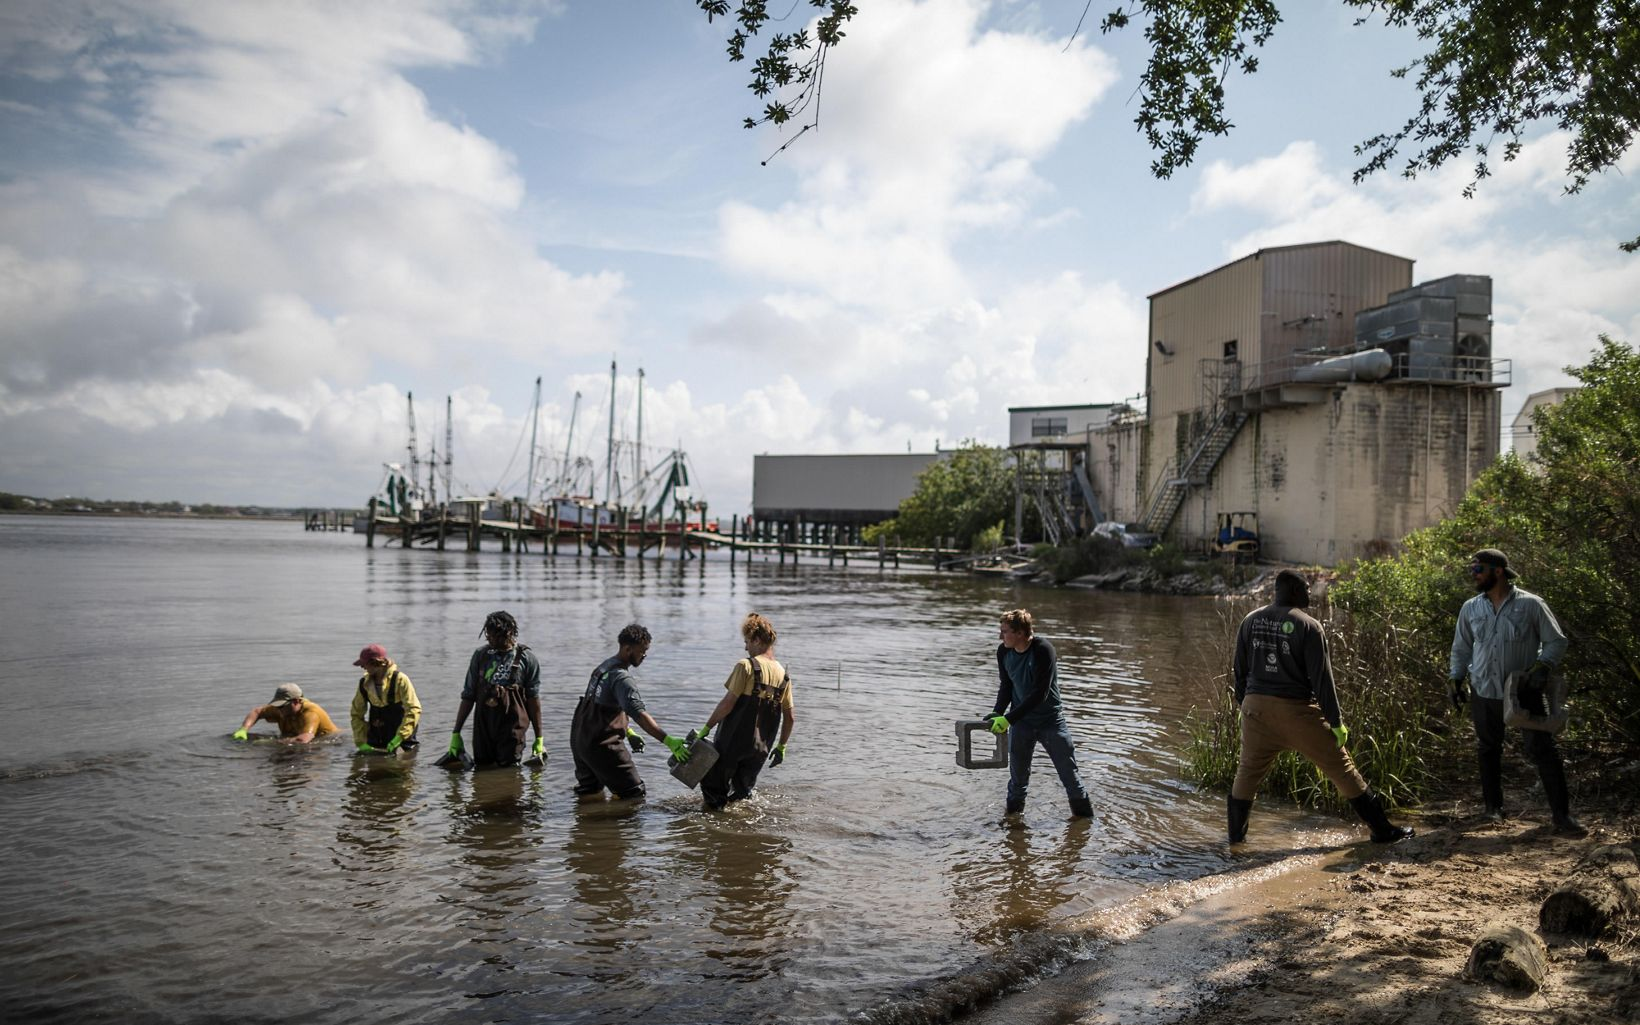 Members of the Conservation Corps create a living shoreline that will be come a home to oysters and other water creatures along the last natural shoreline in Biloxi along the southern Biloxi Bay, Mississippi. This project is also supported by The Nature Conservancy.